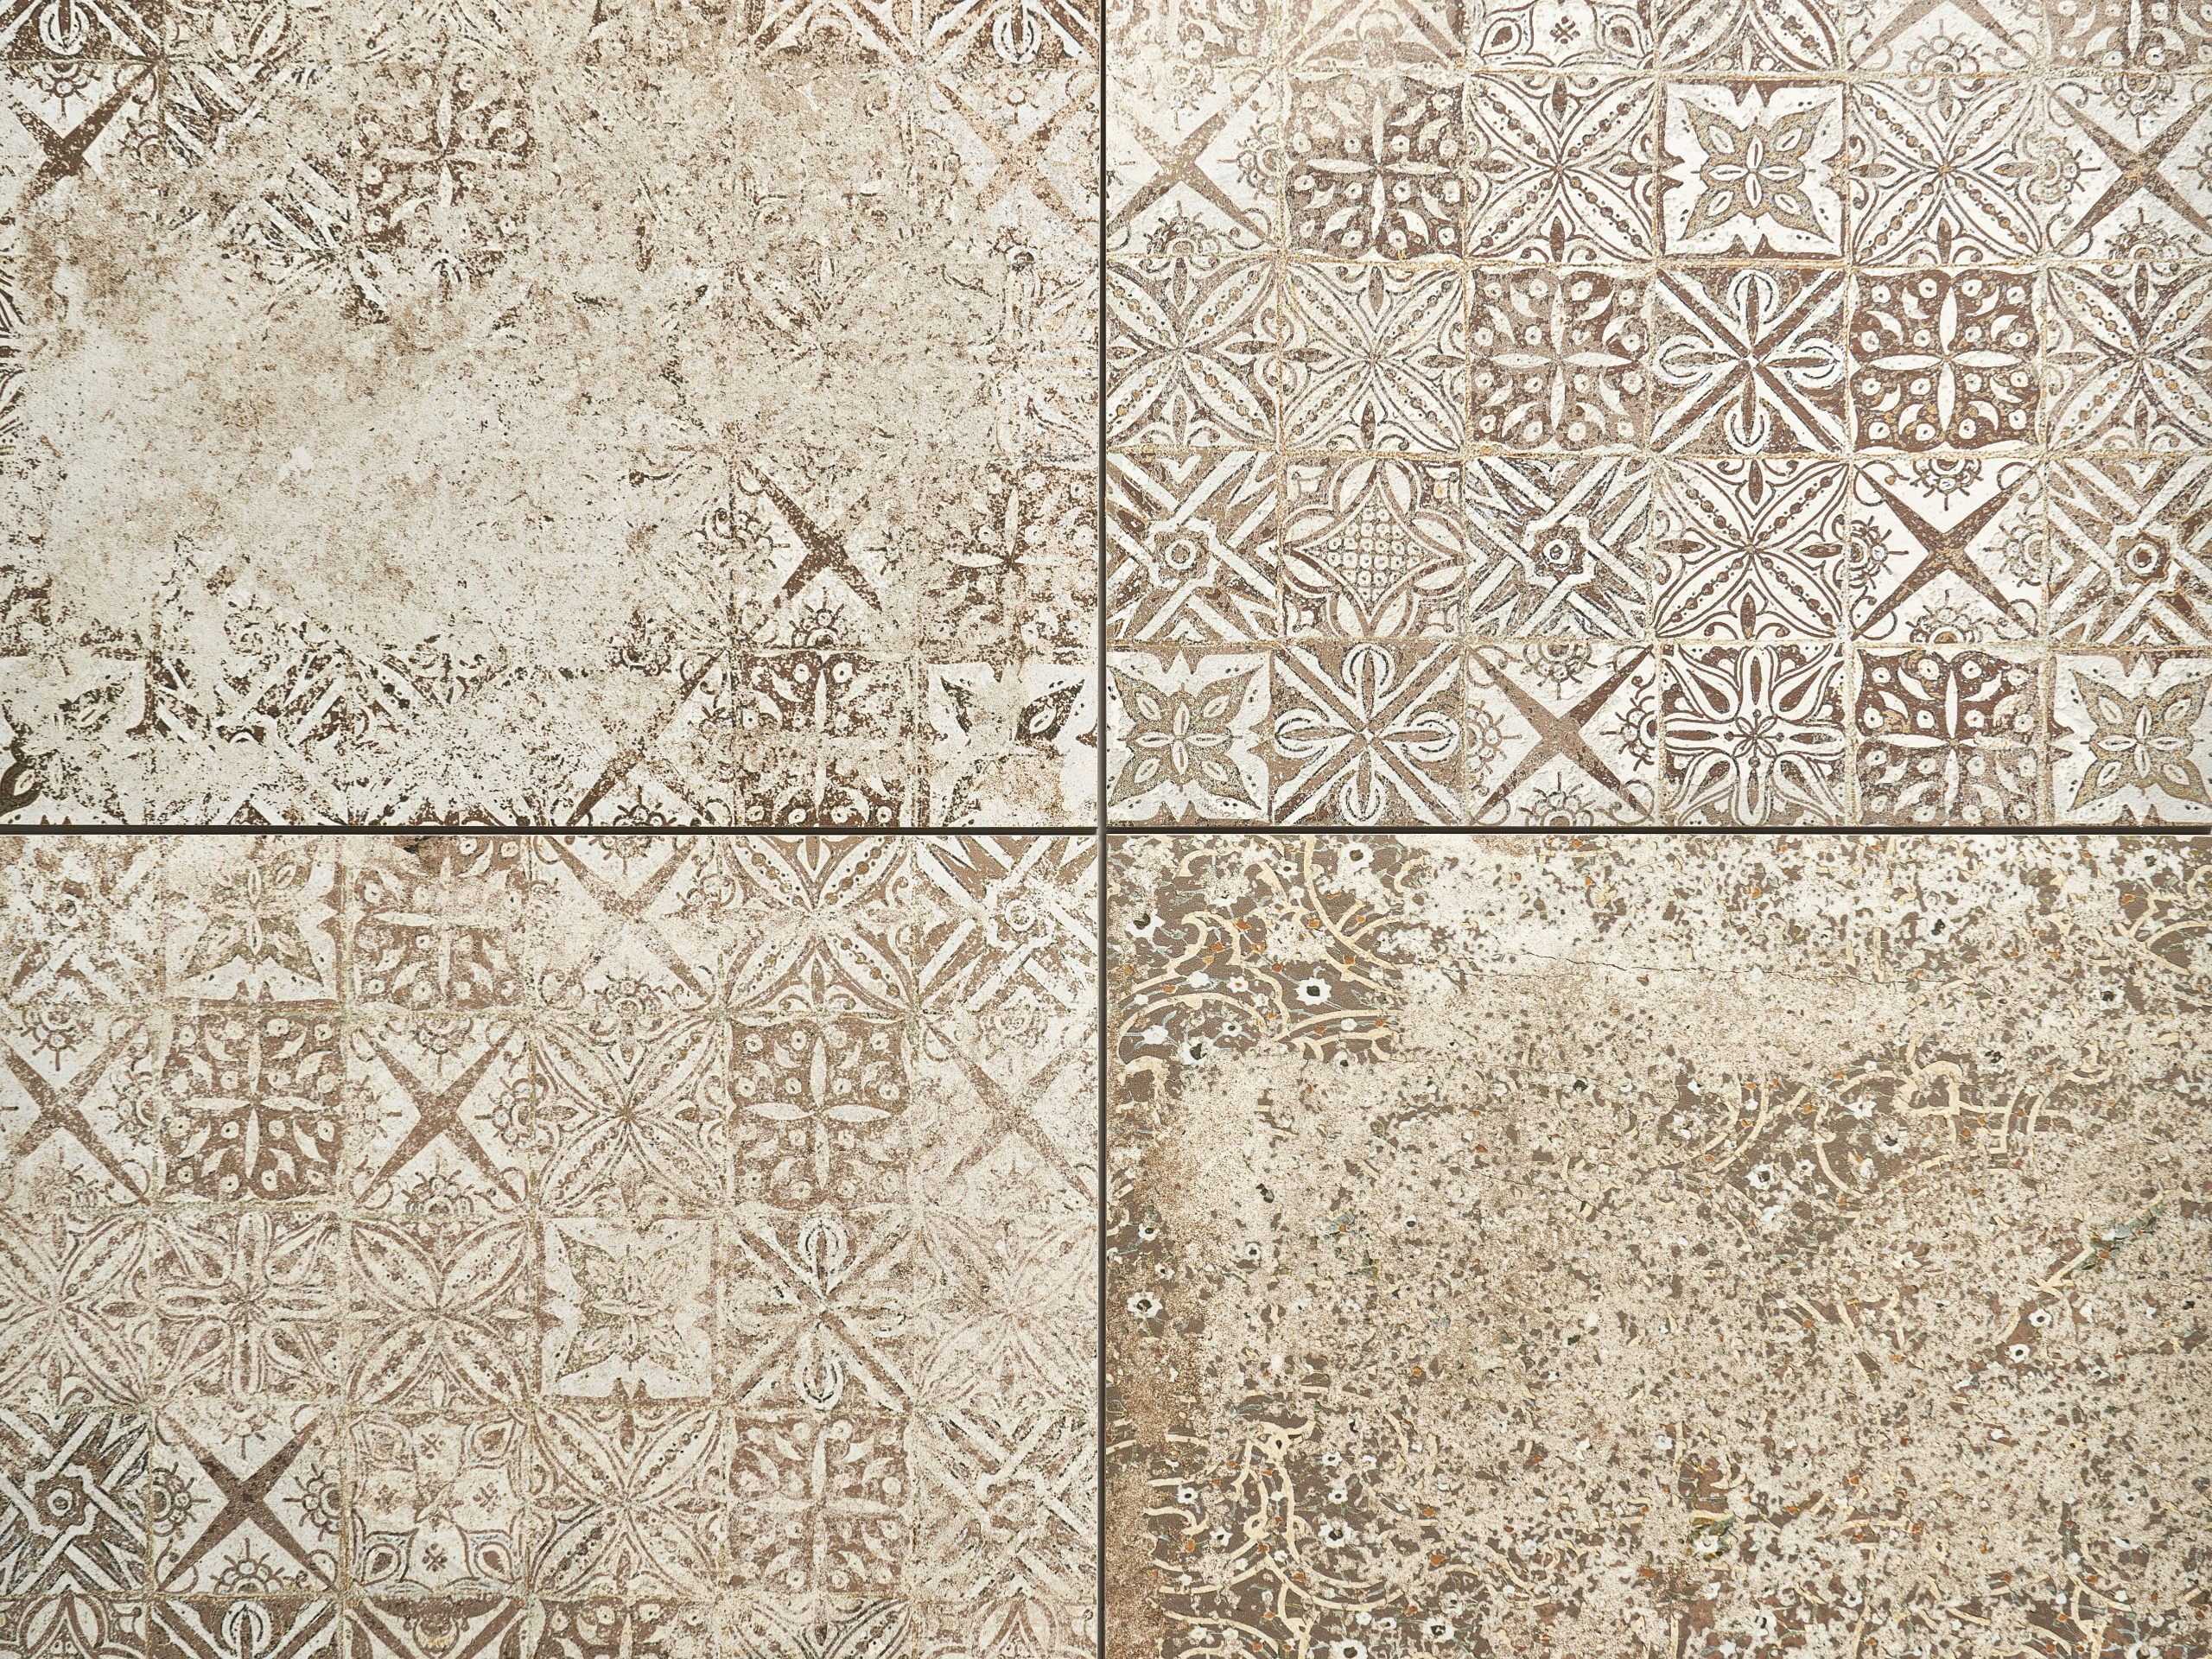 firenze2-decor-porcelain-tile